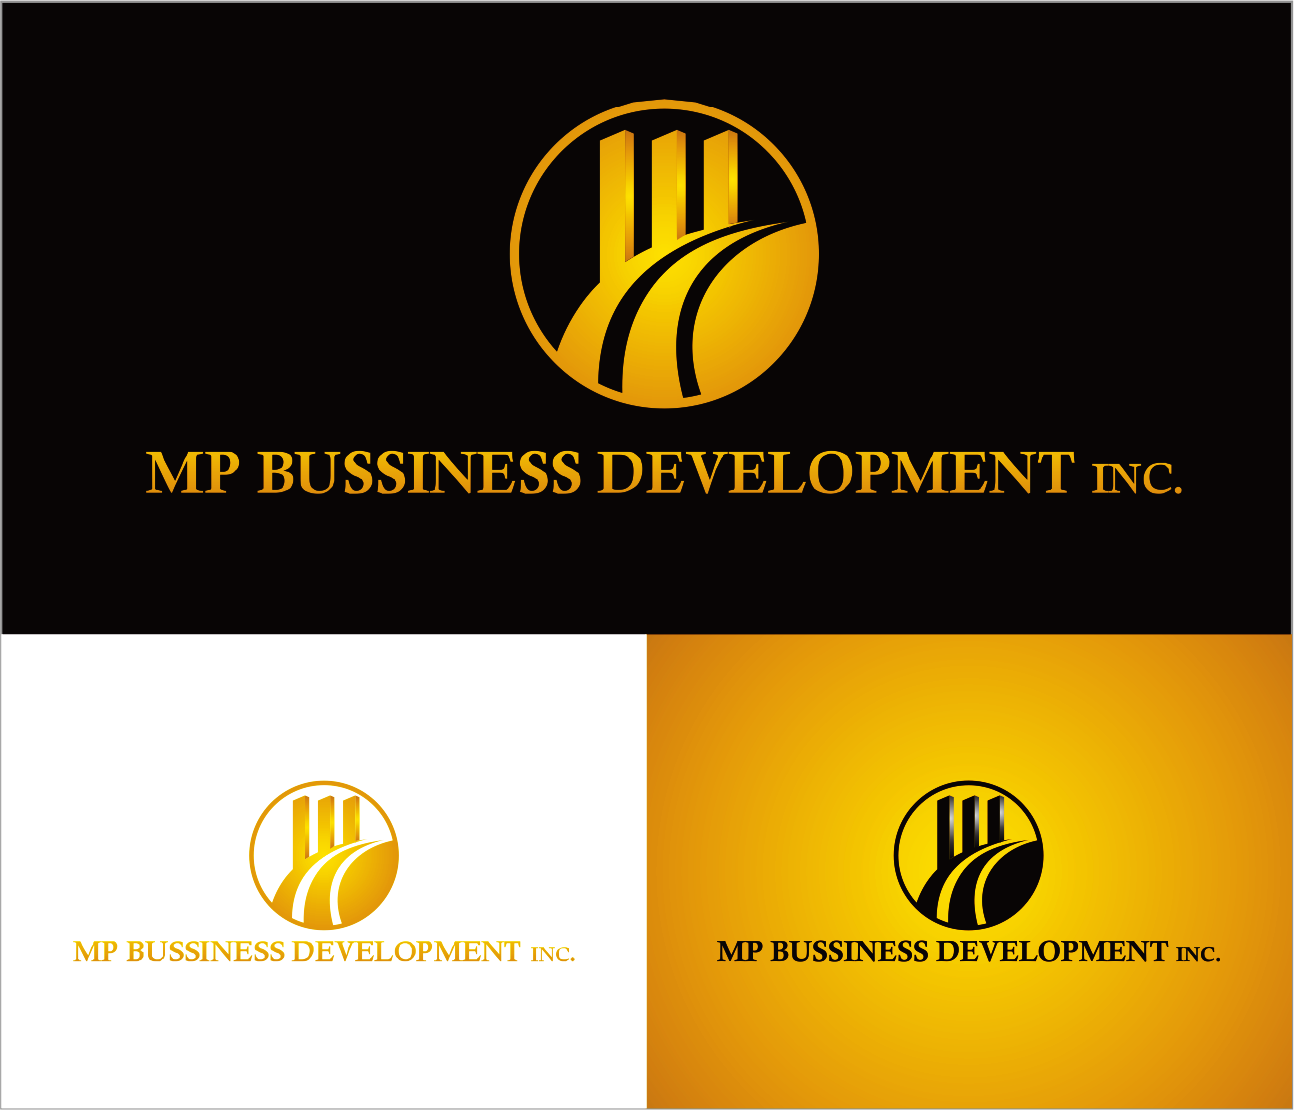 Logo Design by Armada Jamaluddin - Entry No. 195 in the Logo Design Contest MP Business Development Inc. Logo Design.